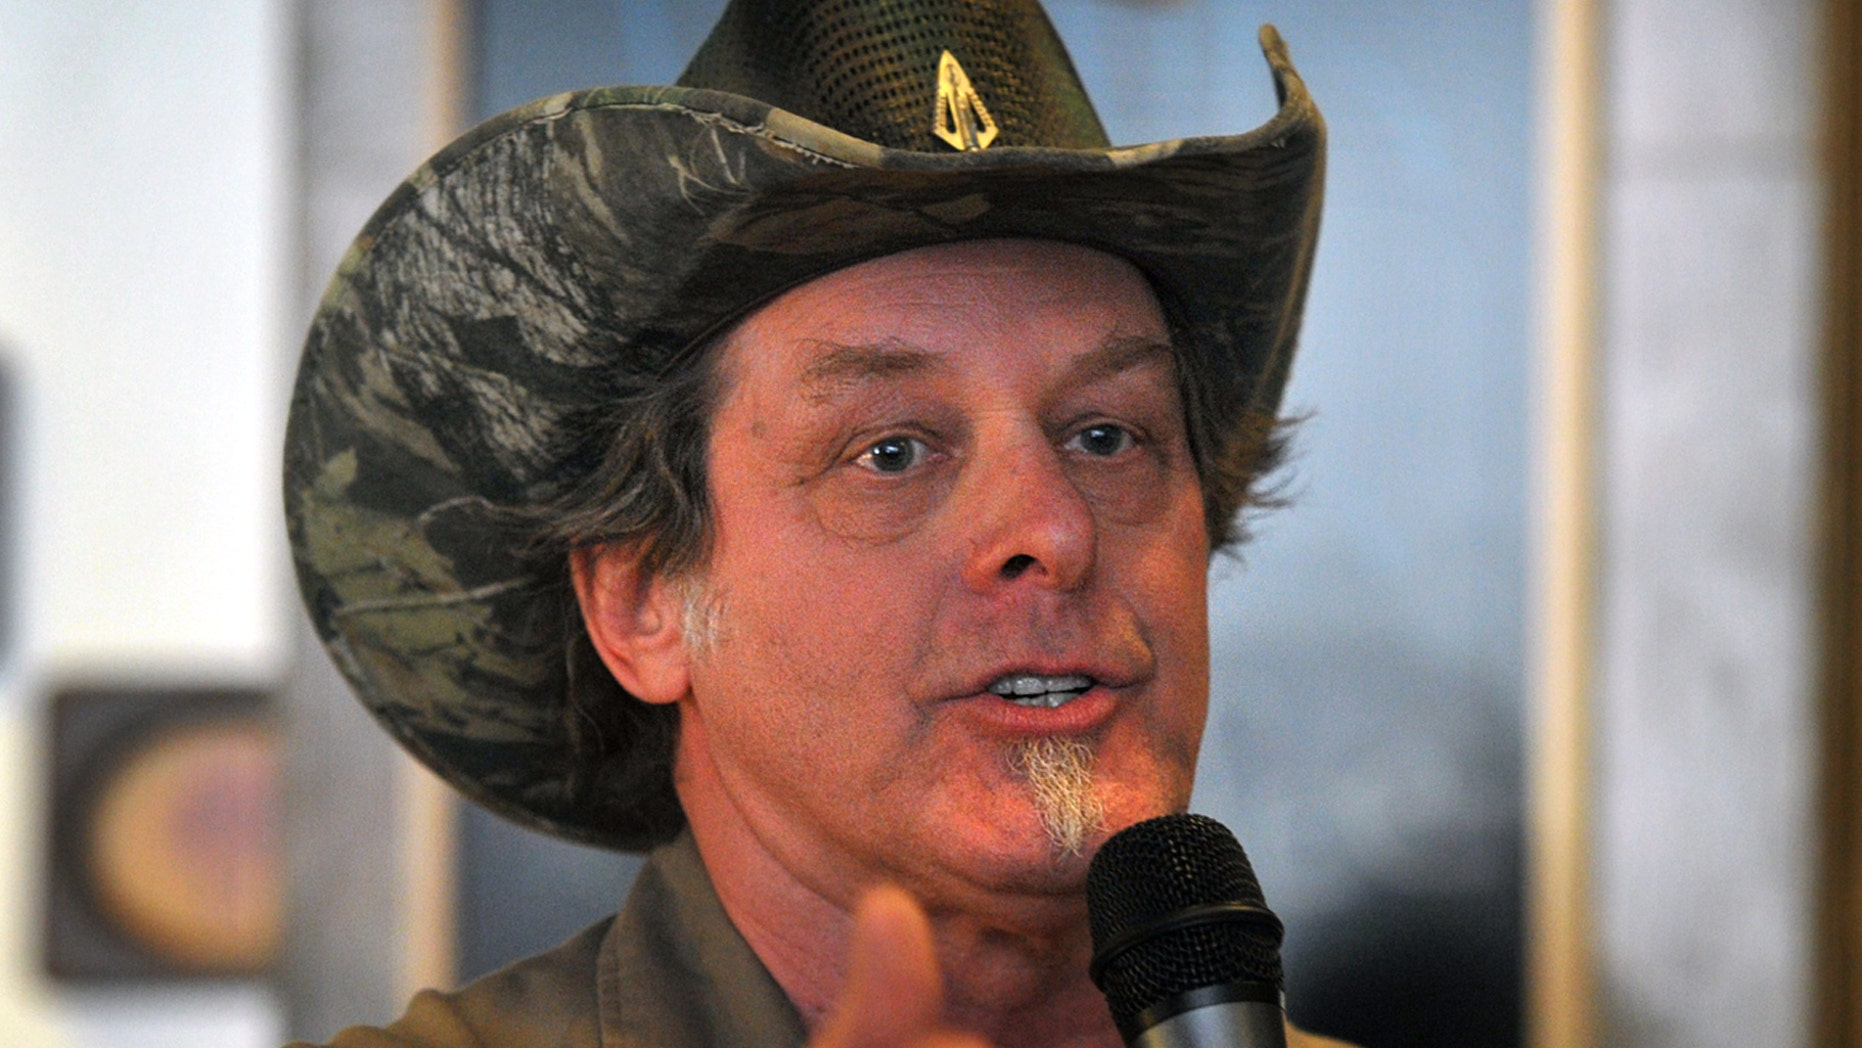 Feb 18, 2014. Ted Nugent speaks to a crowd of Greg Abbott supporters during a campaign stop in Wichita Falls, Texas.